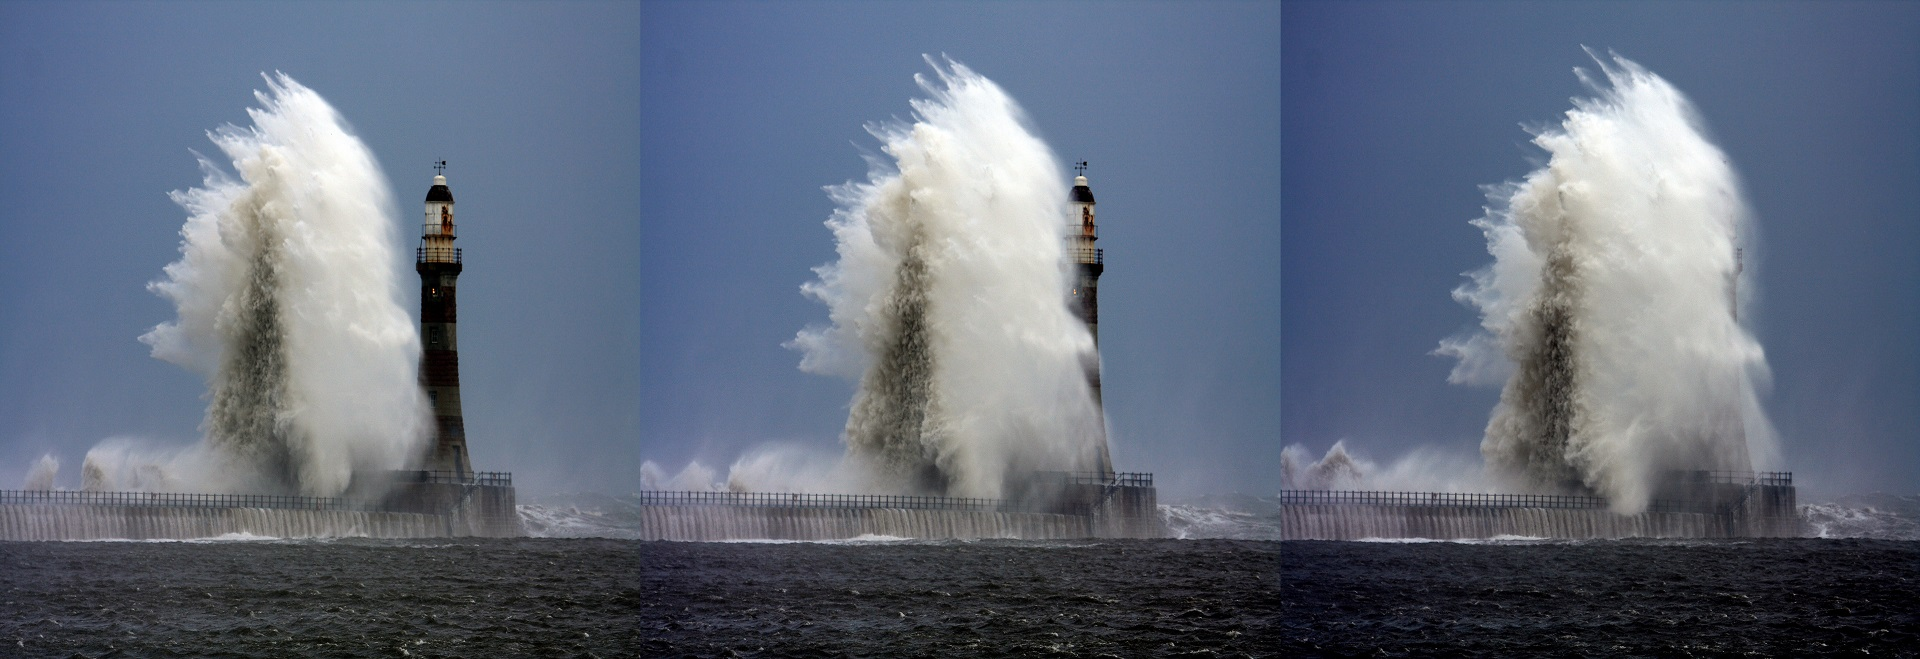 A lighthouse in a rough sea, a wave breaks against it.